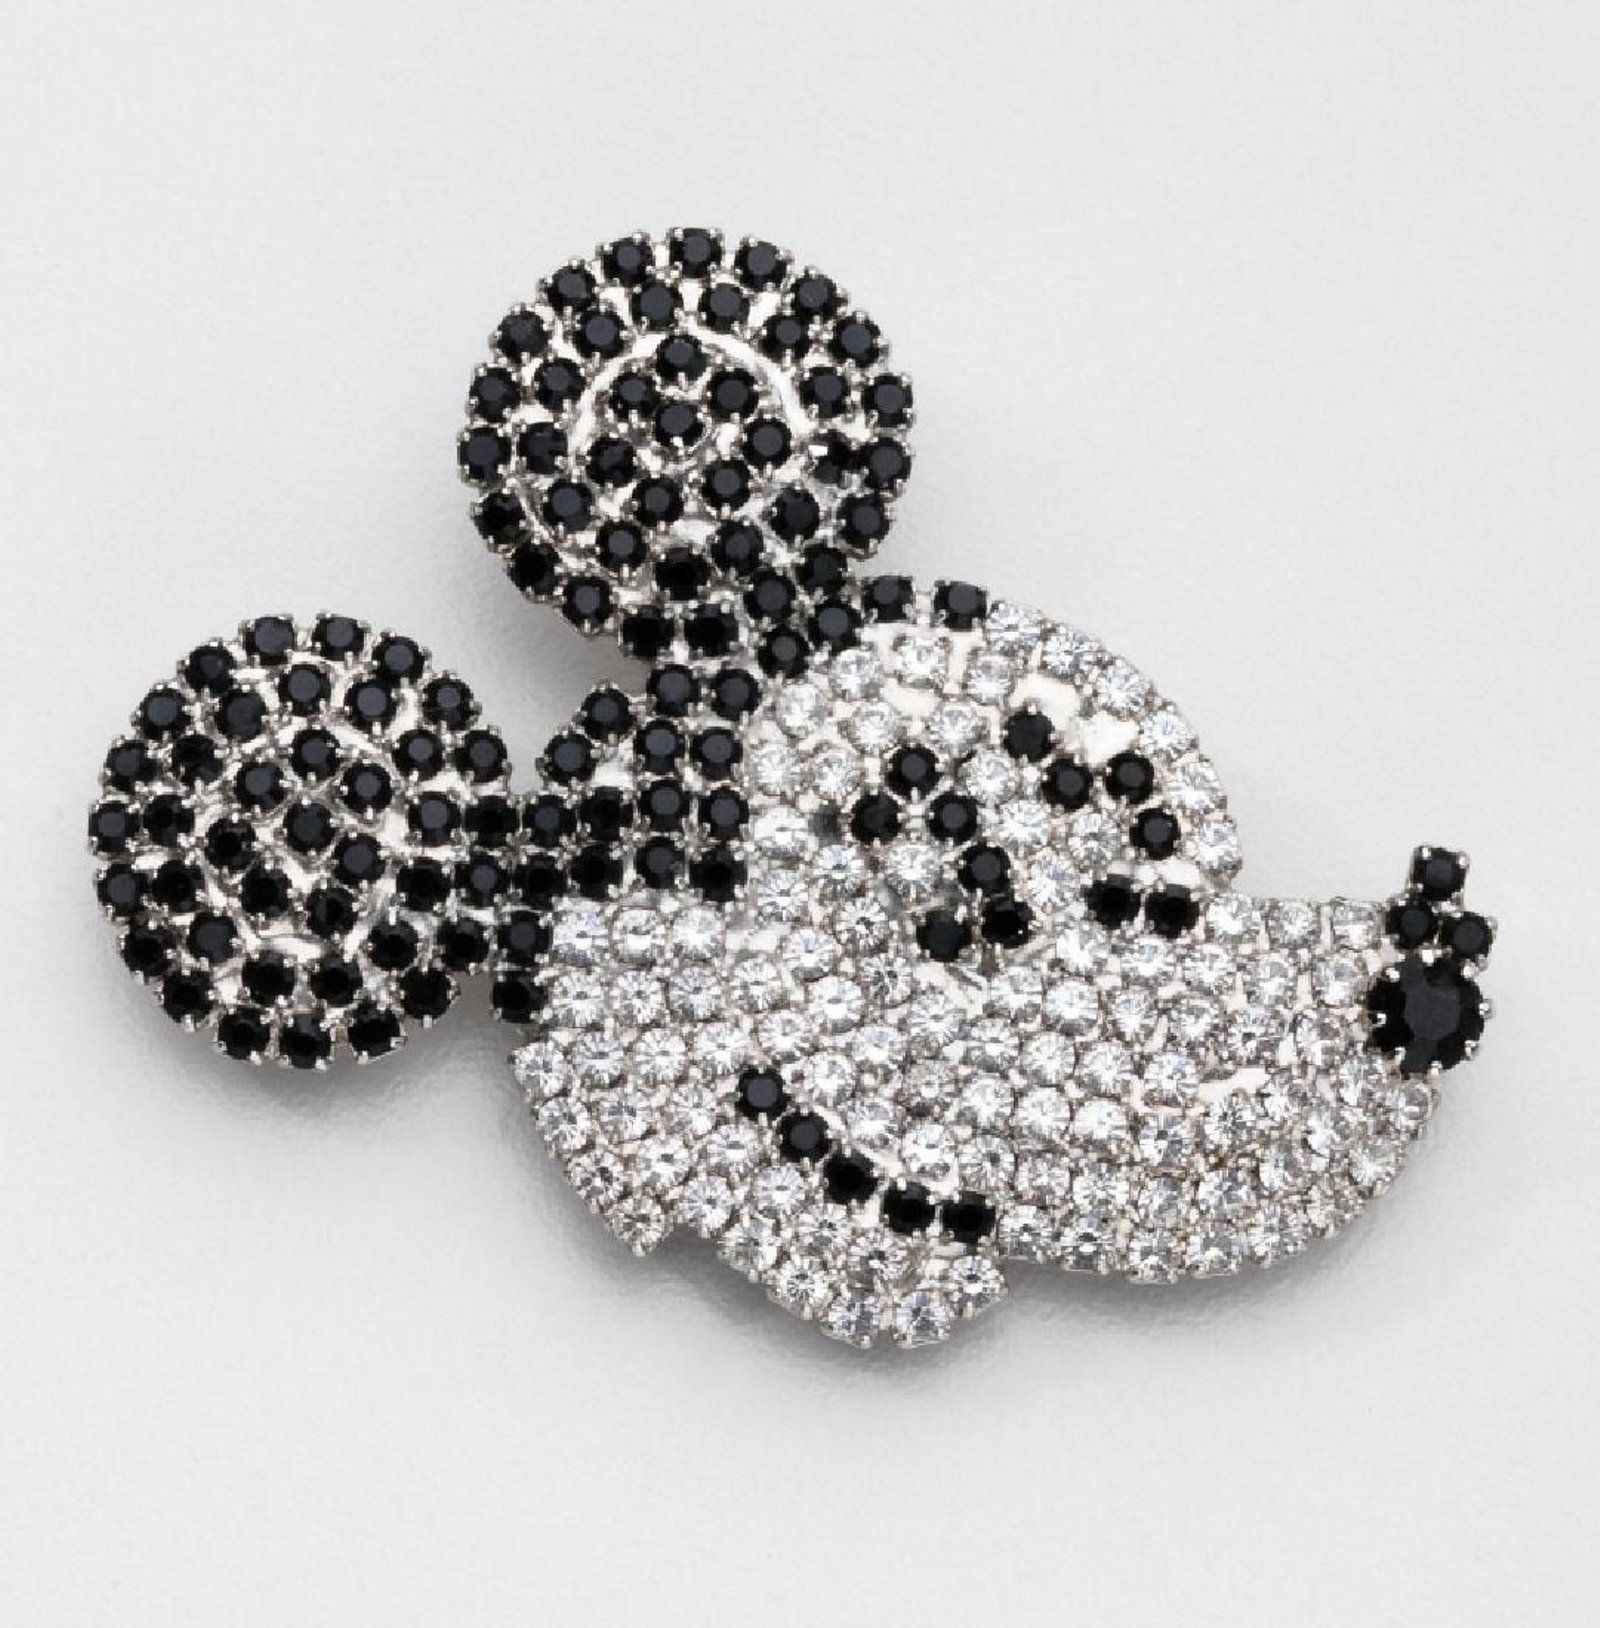 68002be2e4f58 BUTLER & WILSON RHINESTONE MICKEY MOUSE DISNEY BROOCH on ...